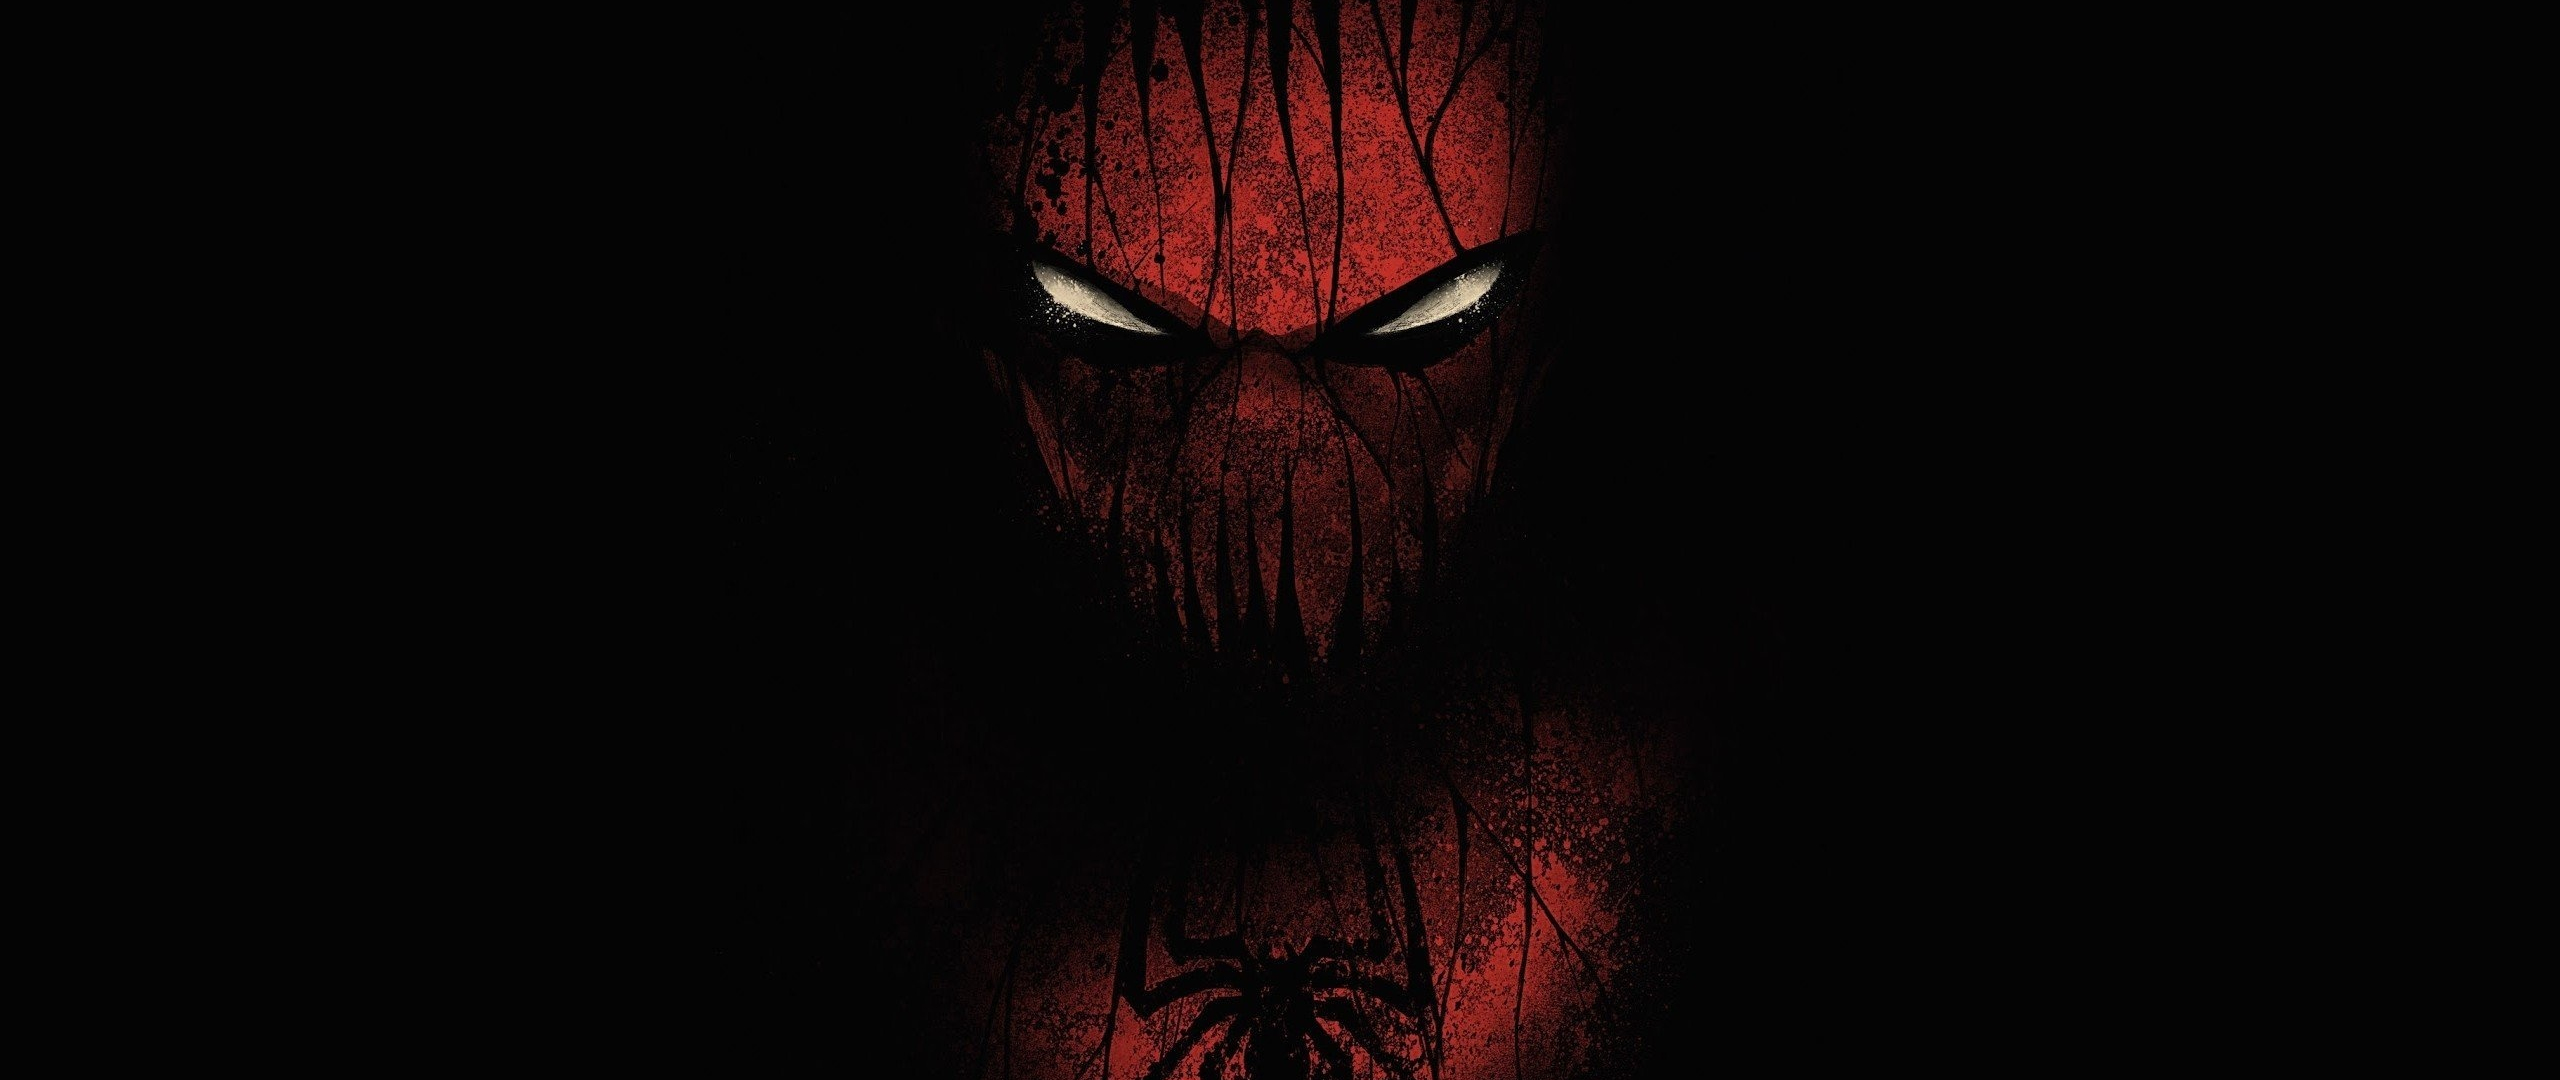 Download 2560x1080 Wallpaper Red And Black Spiderman